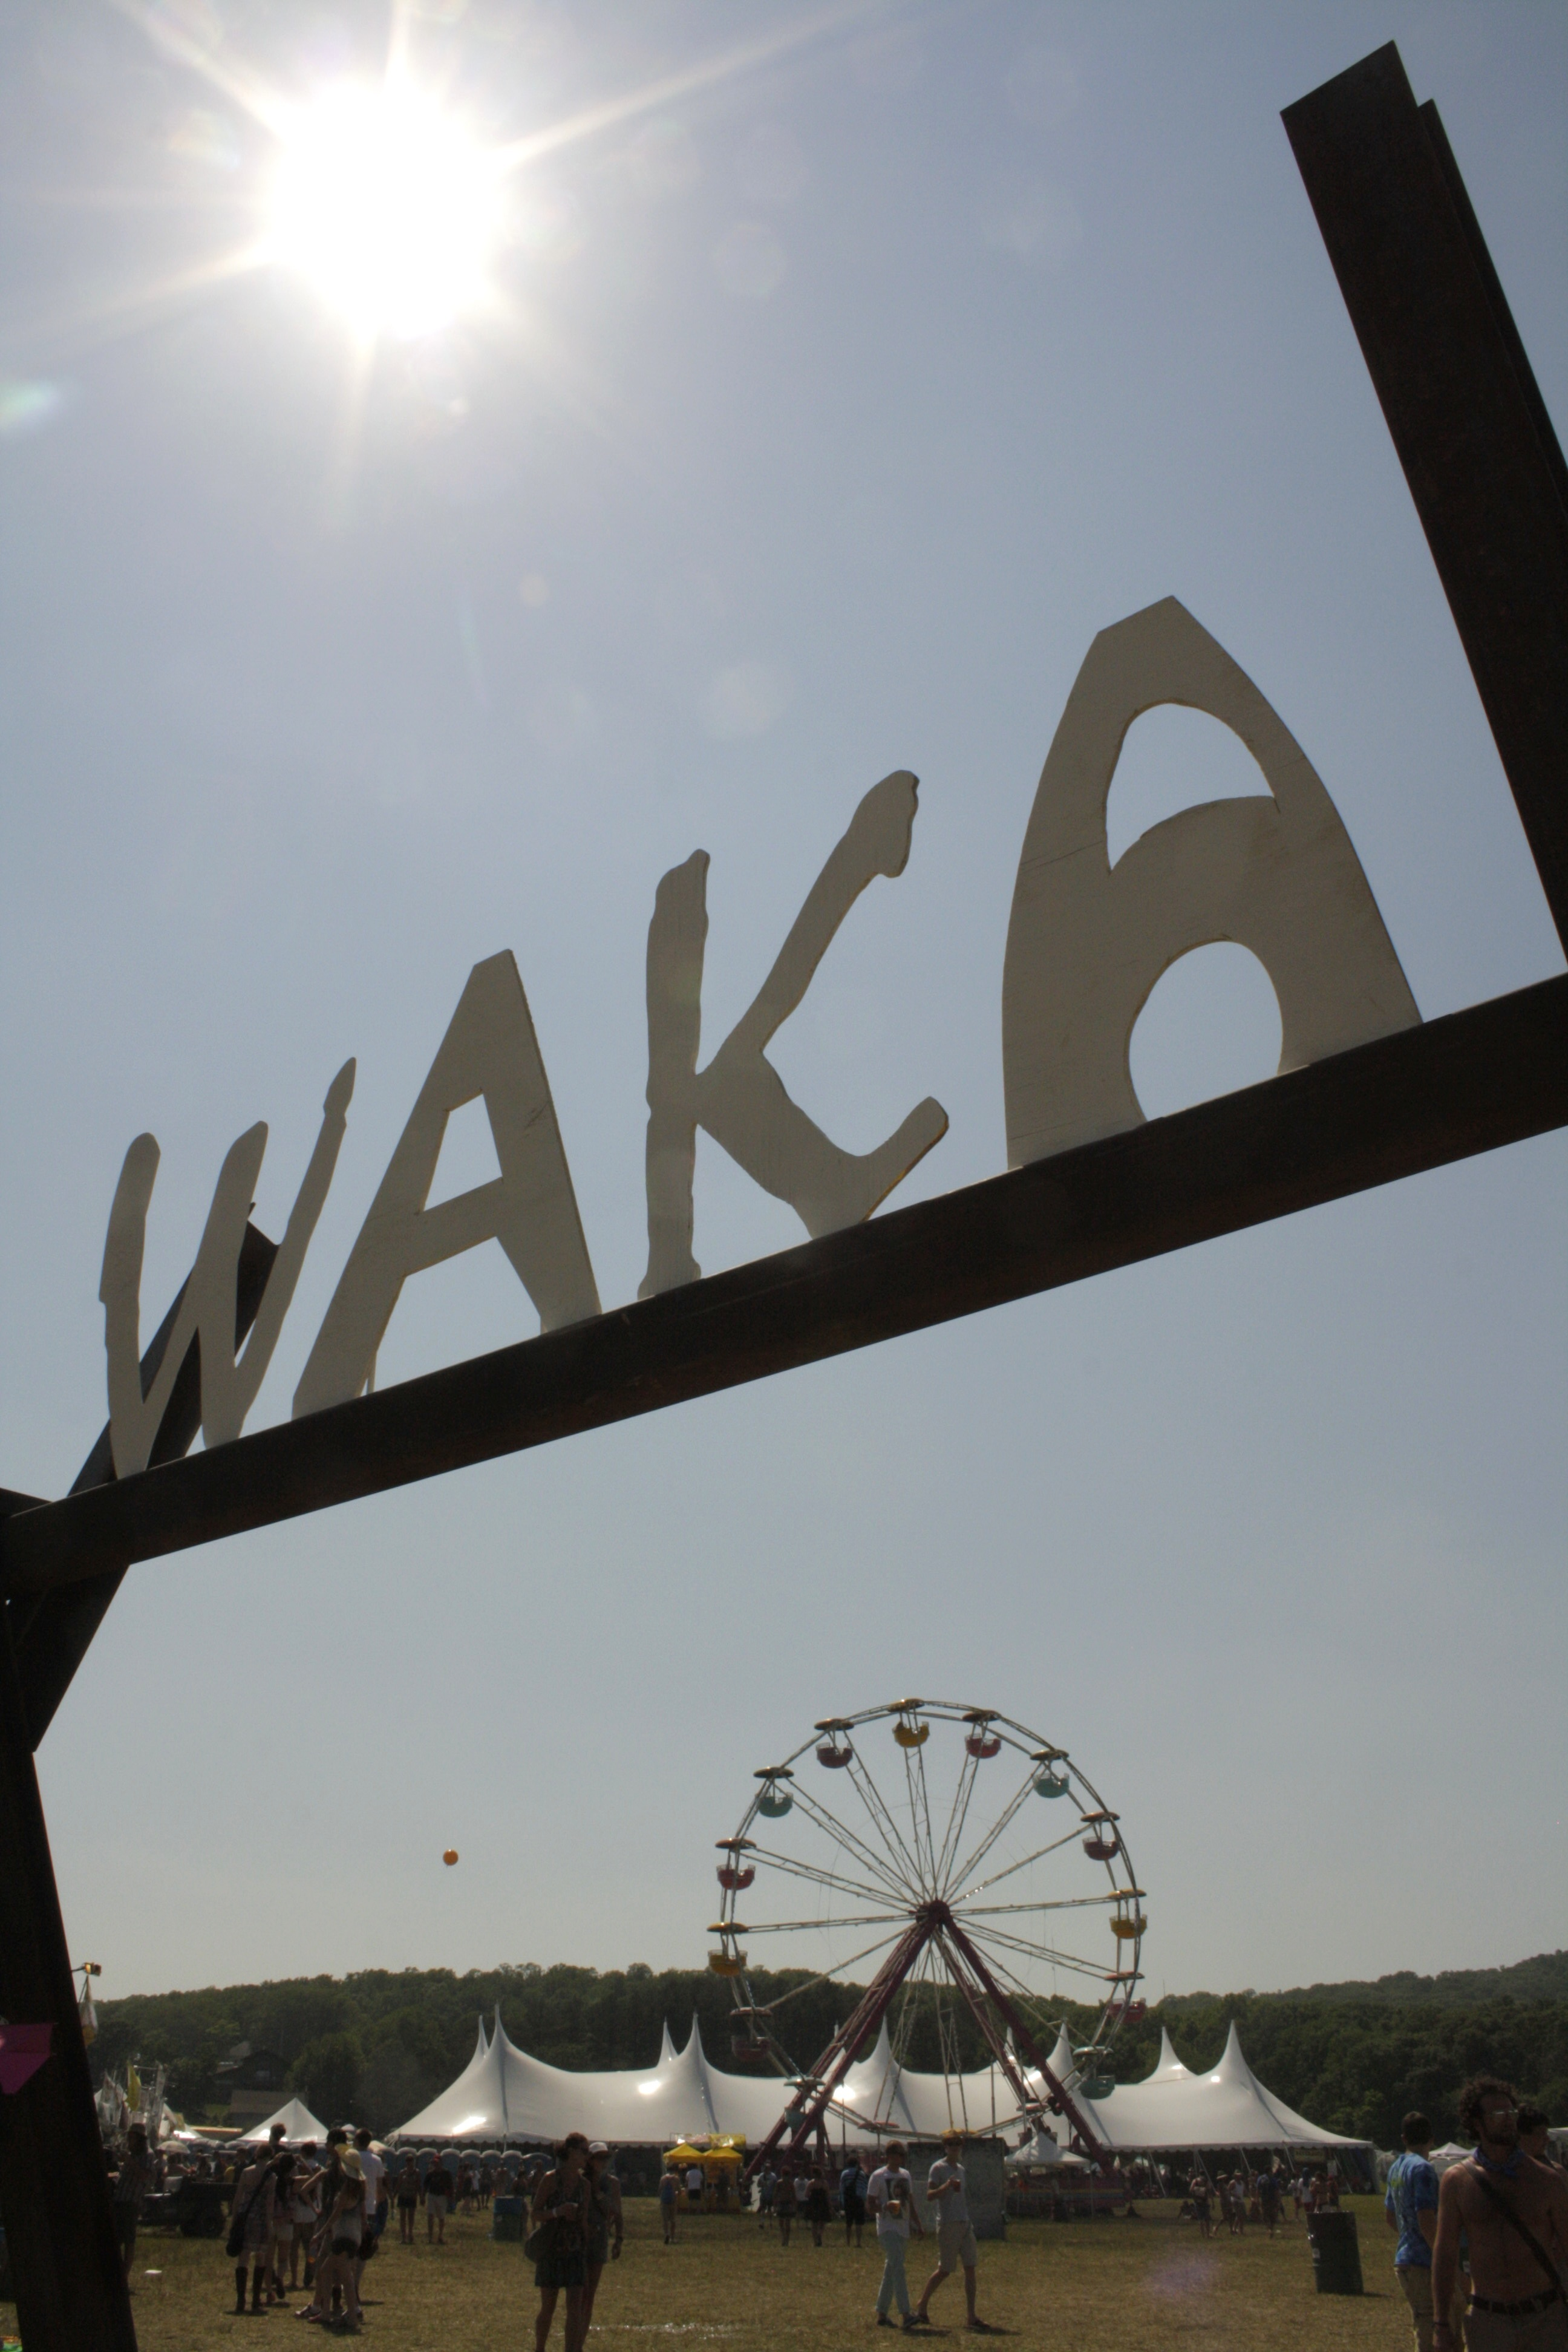 Wakarusa Music & Camping Festival Report and Photos: Day 3